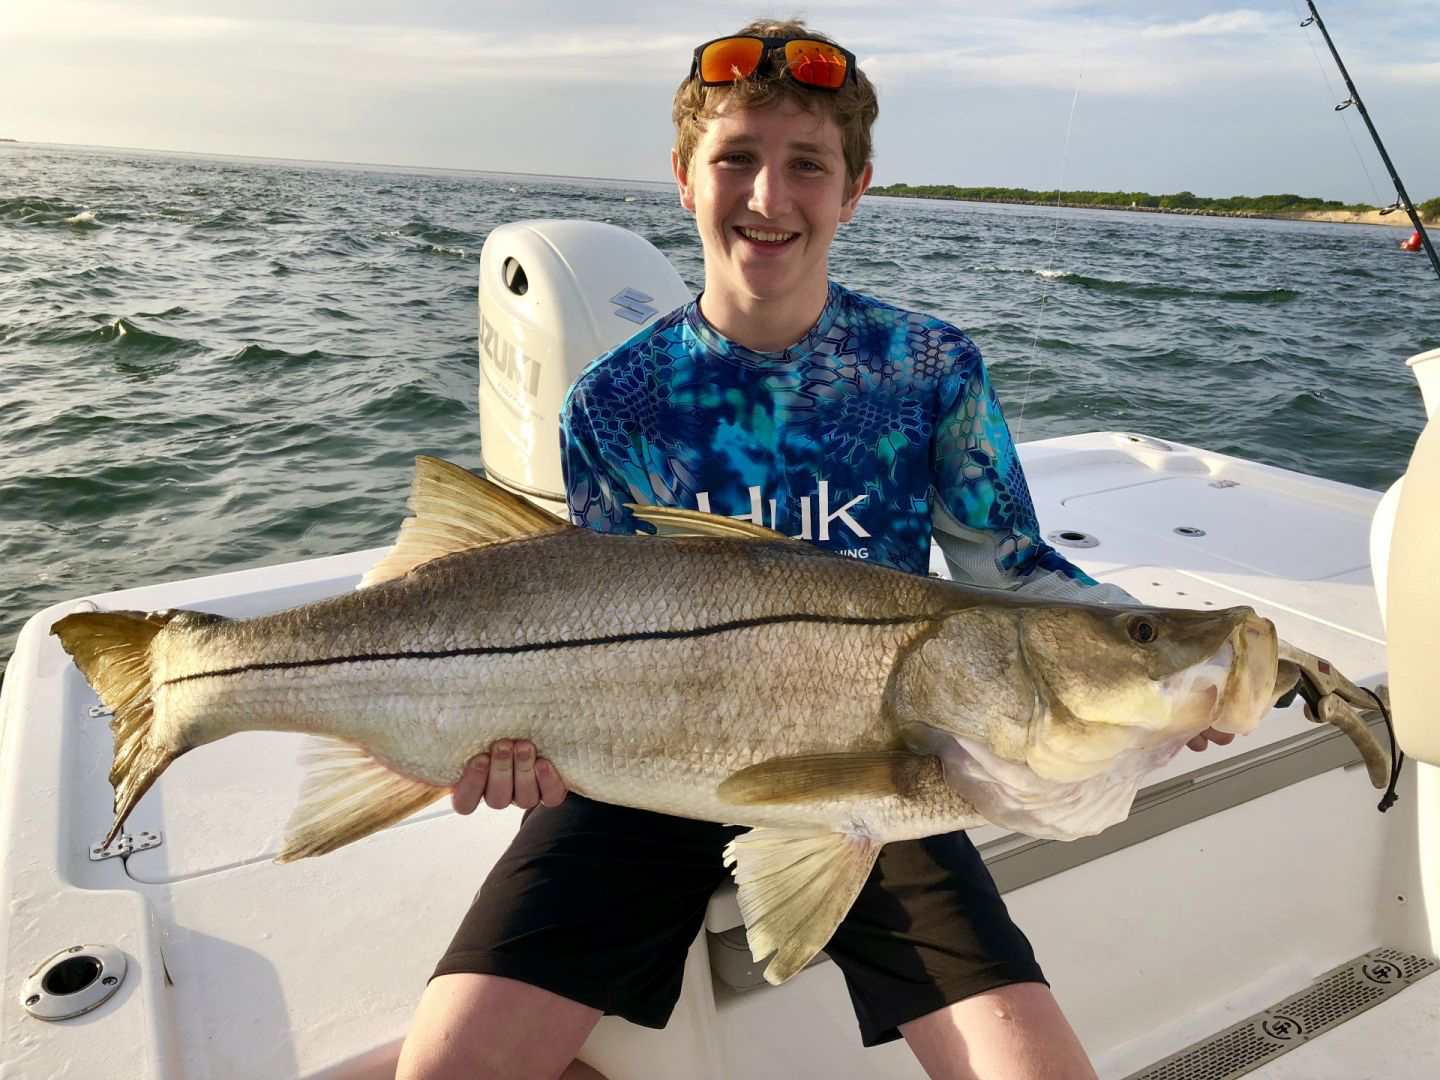 A boy holding a big Snook on a boat